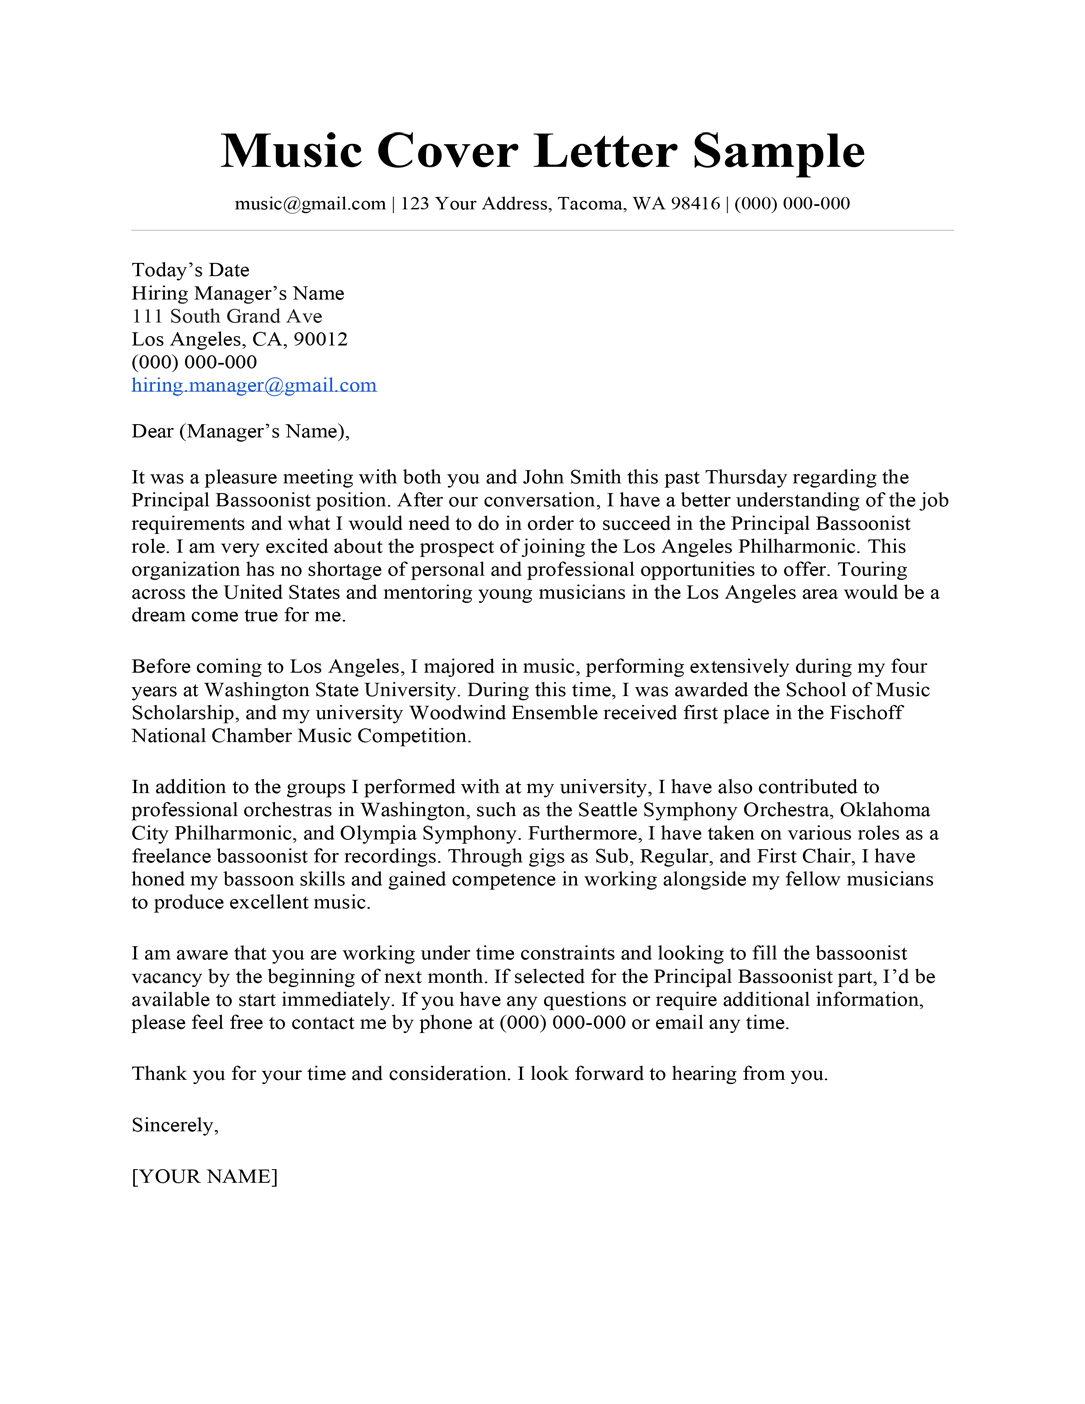 Music cover letter sample